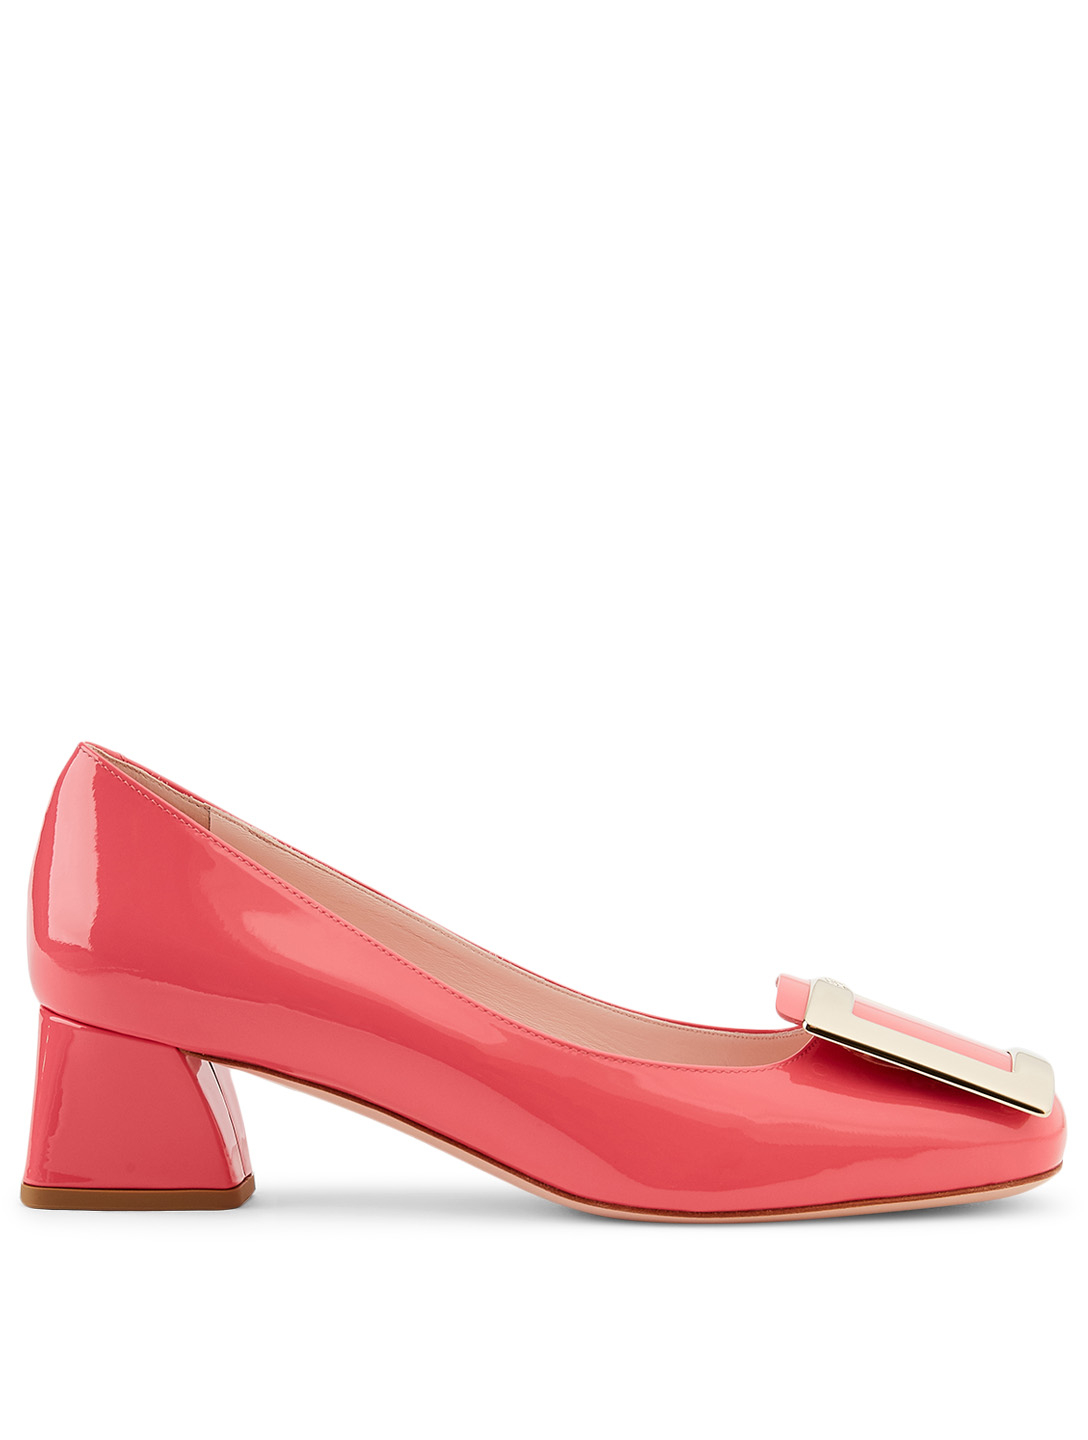 ROGER VIVIER Très Vivier 45 Patent Leather Pumps Women's Pink